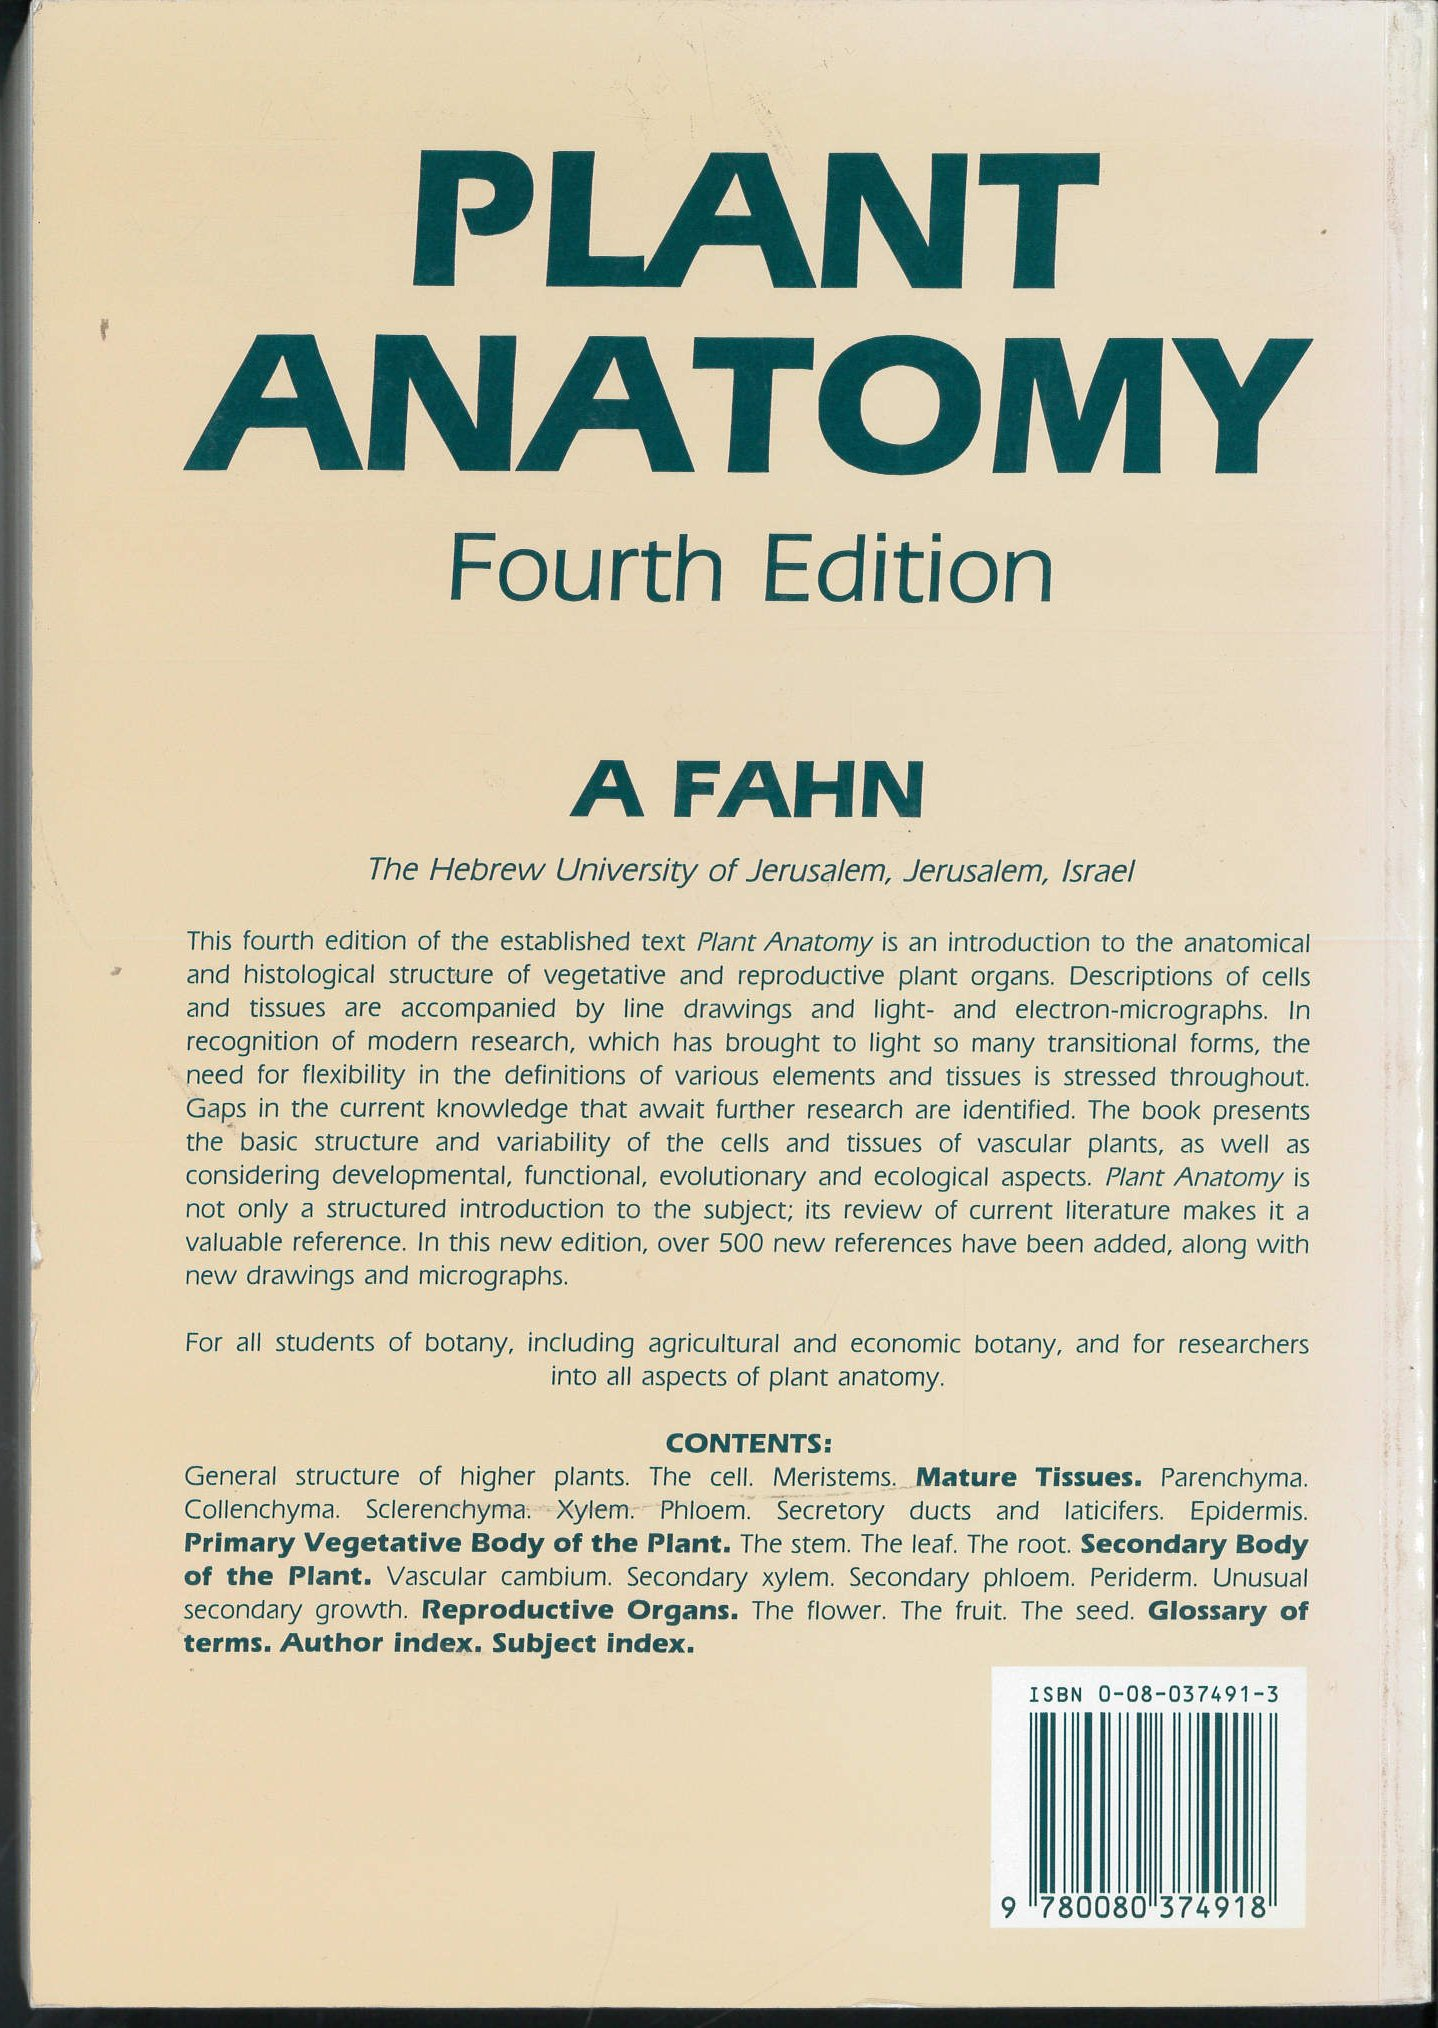 Plant Anatomy: Amazon.co.uk: A. Fahn: 9780080374918: Books